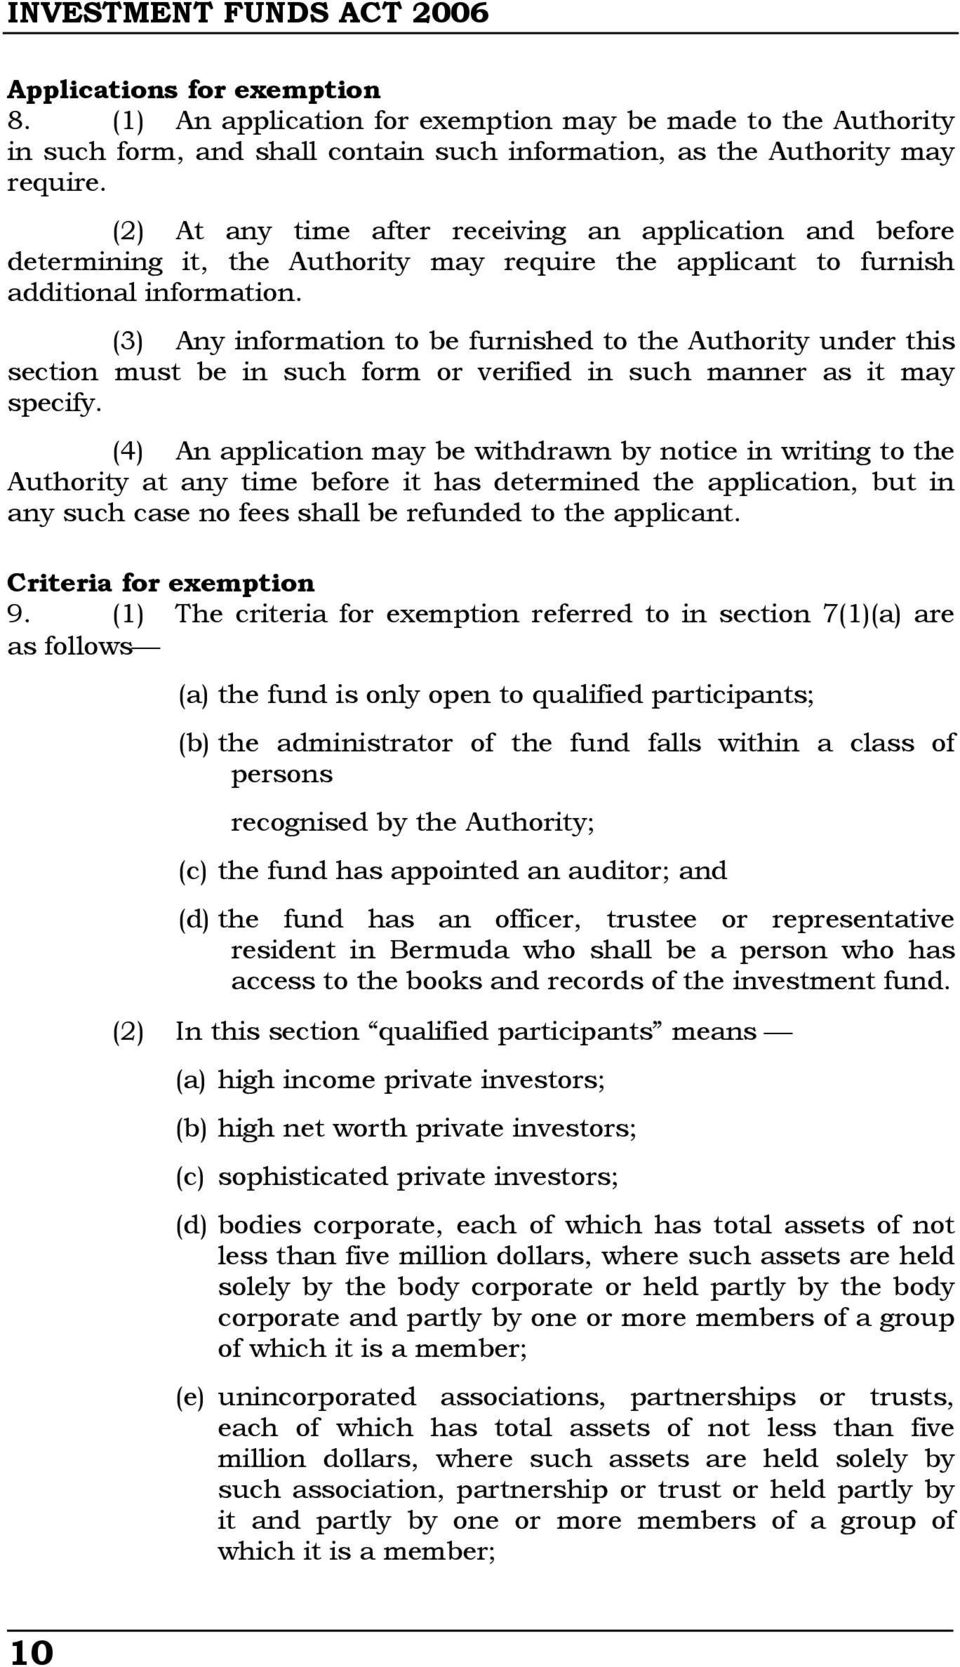 (3) Any information to be furnished to the Authority under this section must be in such form or verified in such manner as it may specify.